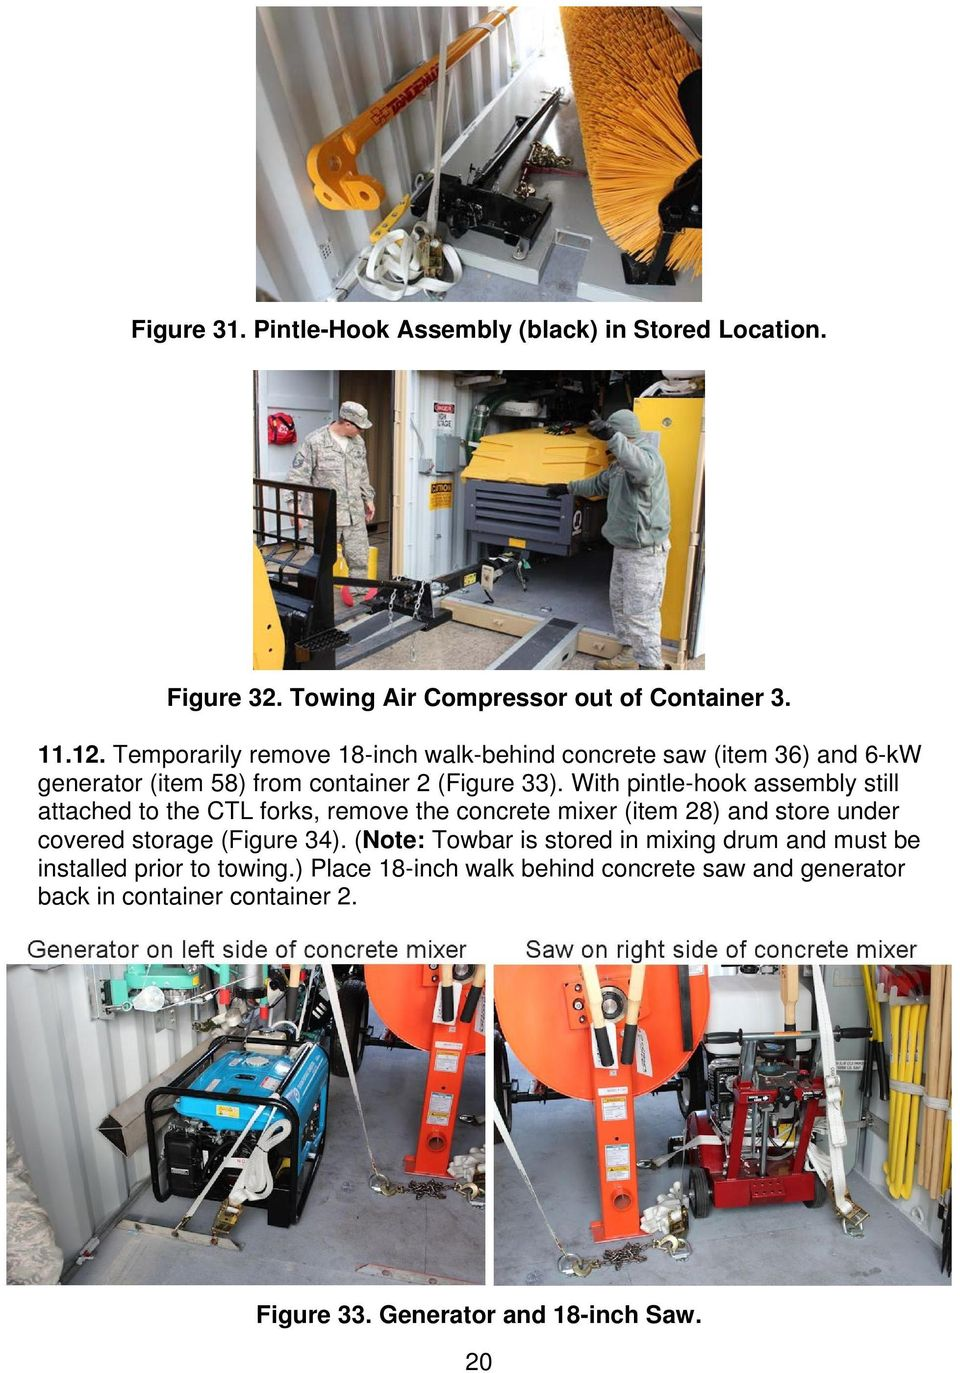 With pintle-hook assembly still attached to the CTL forks, remove the concrete mixer (item 28) and store under covered storage (Figure 34).